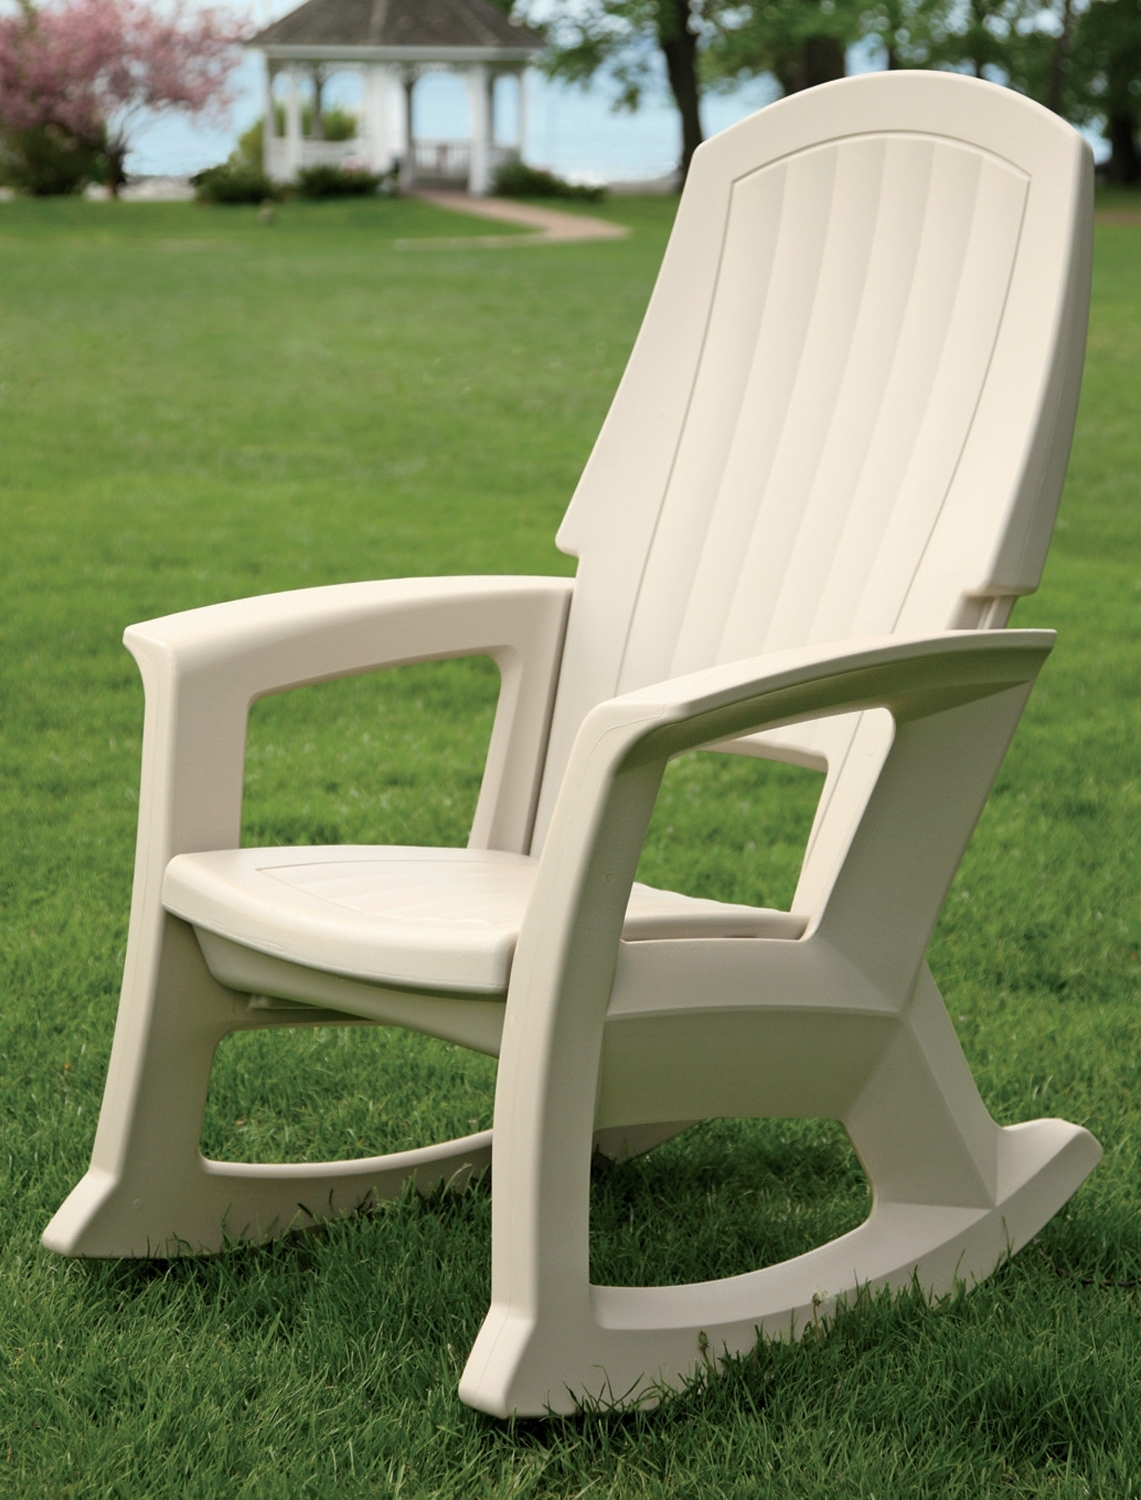 2018 Used Patio Rocking Chairs Regarding Patio Rocking Chair Oversized Outdoor Chairs Best For Small Nursery (View 2 of 15)